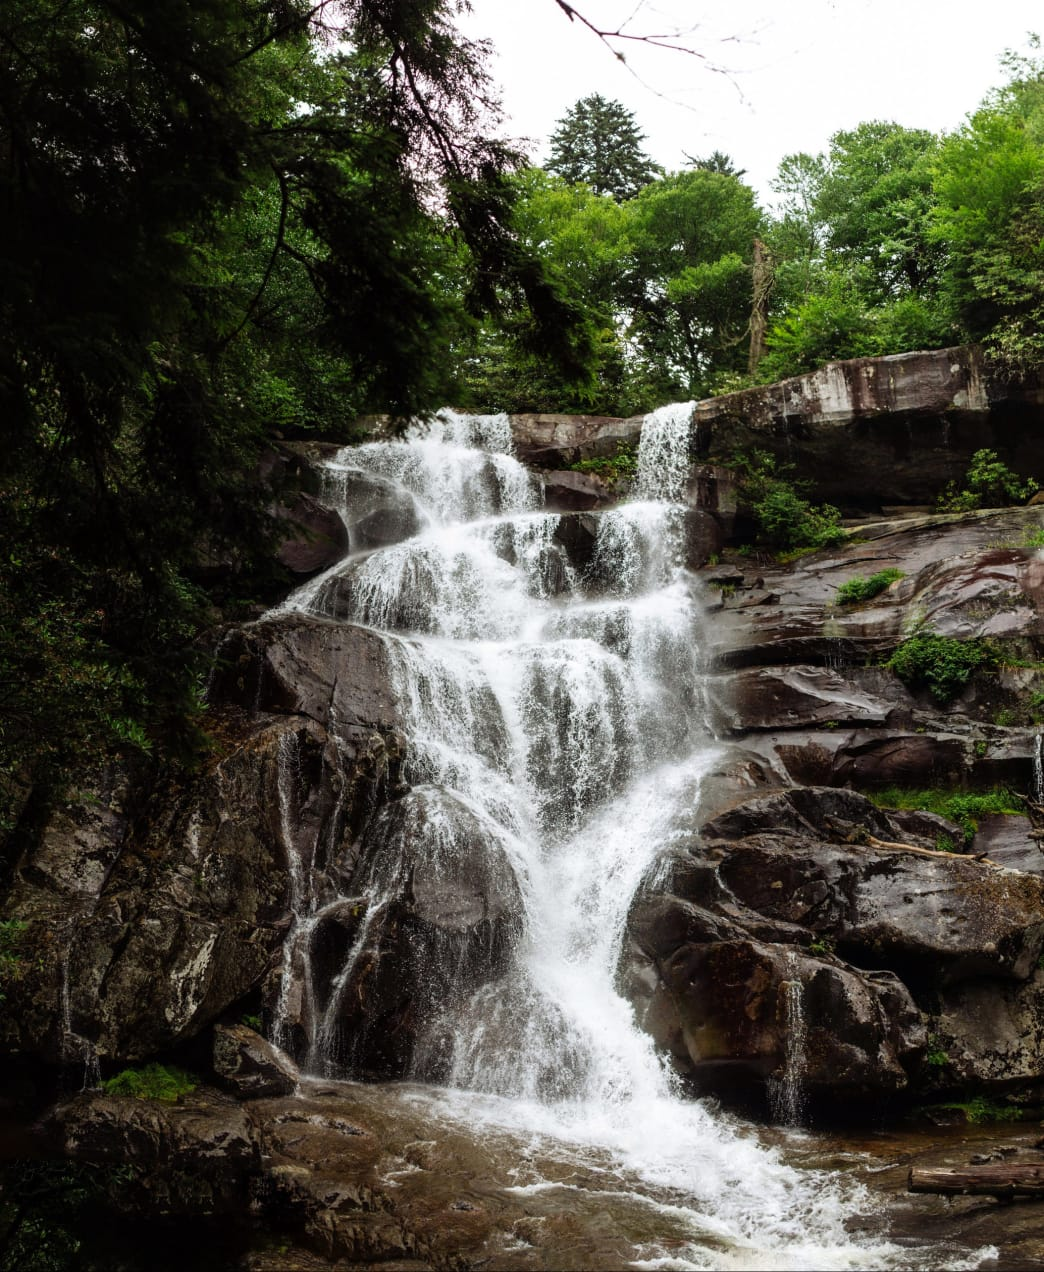 The Ramsey Cascades trail is one of the most beautiful and refreshing summer hikes in the Smokies.